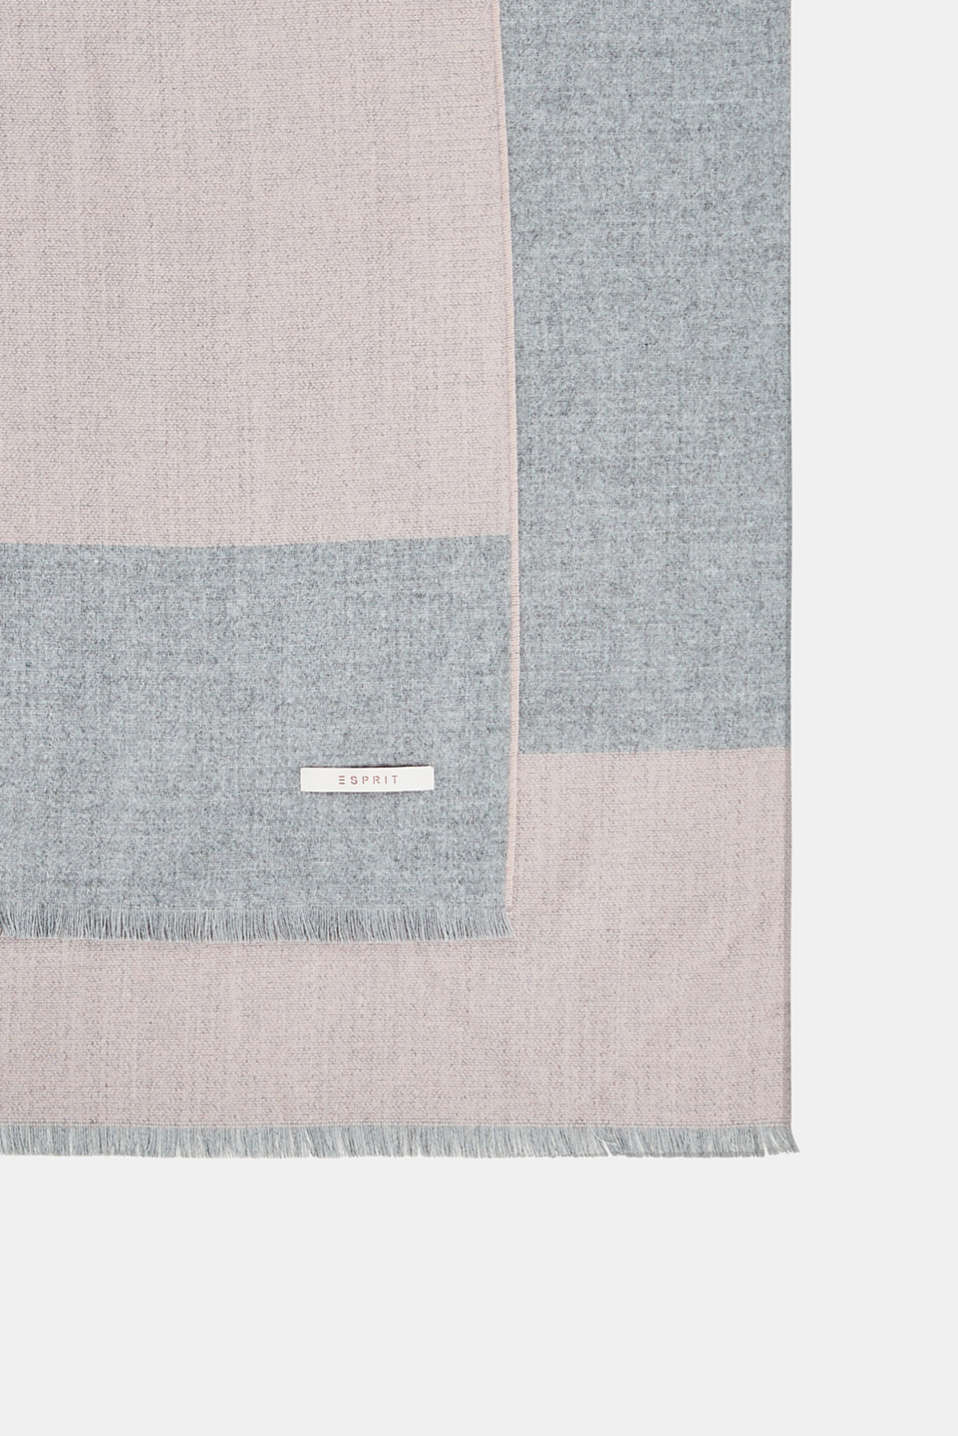 Esprit - Elegant throw with contrasting stripes, made of Cashmink®